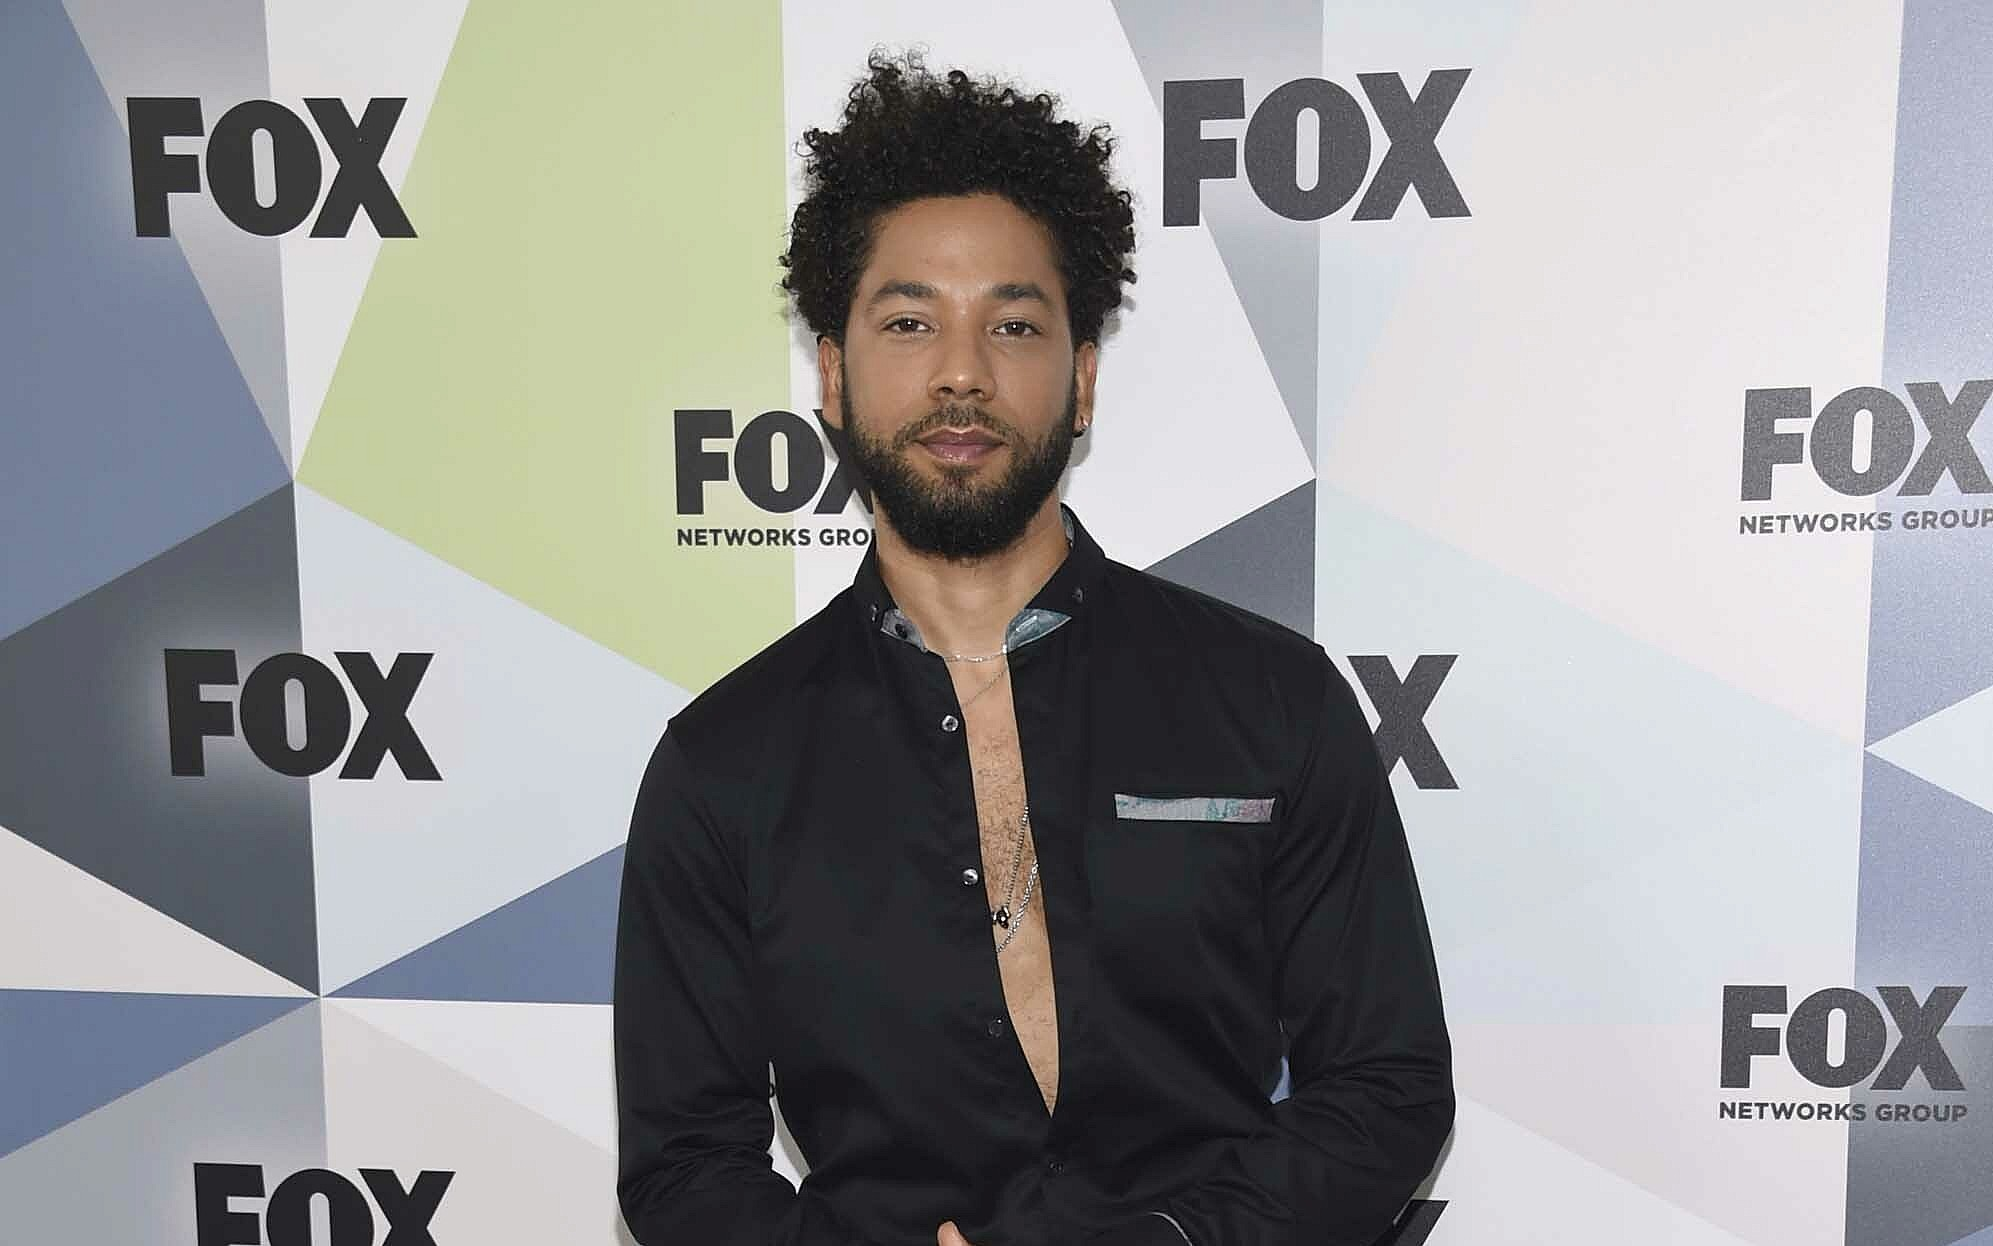 Did Jussie Smollett Stage His Own Hate Crime?